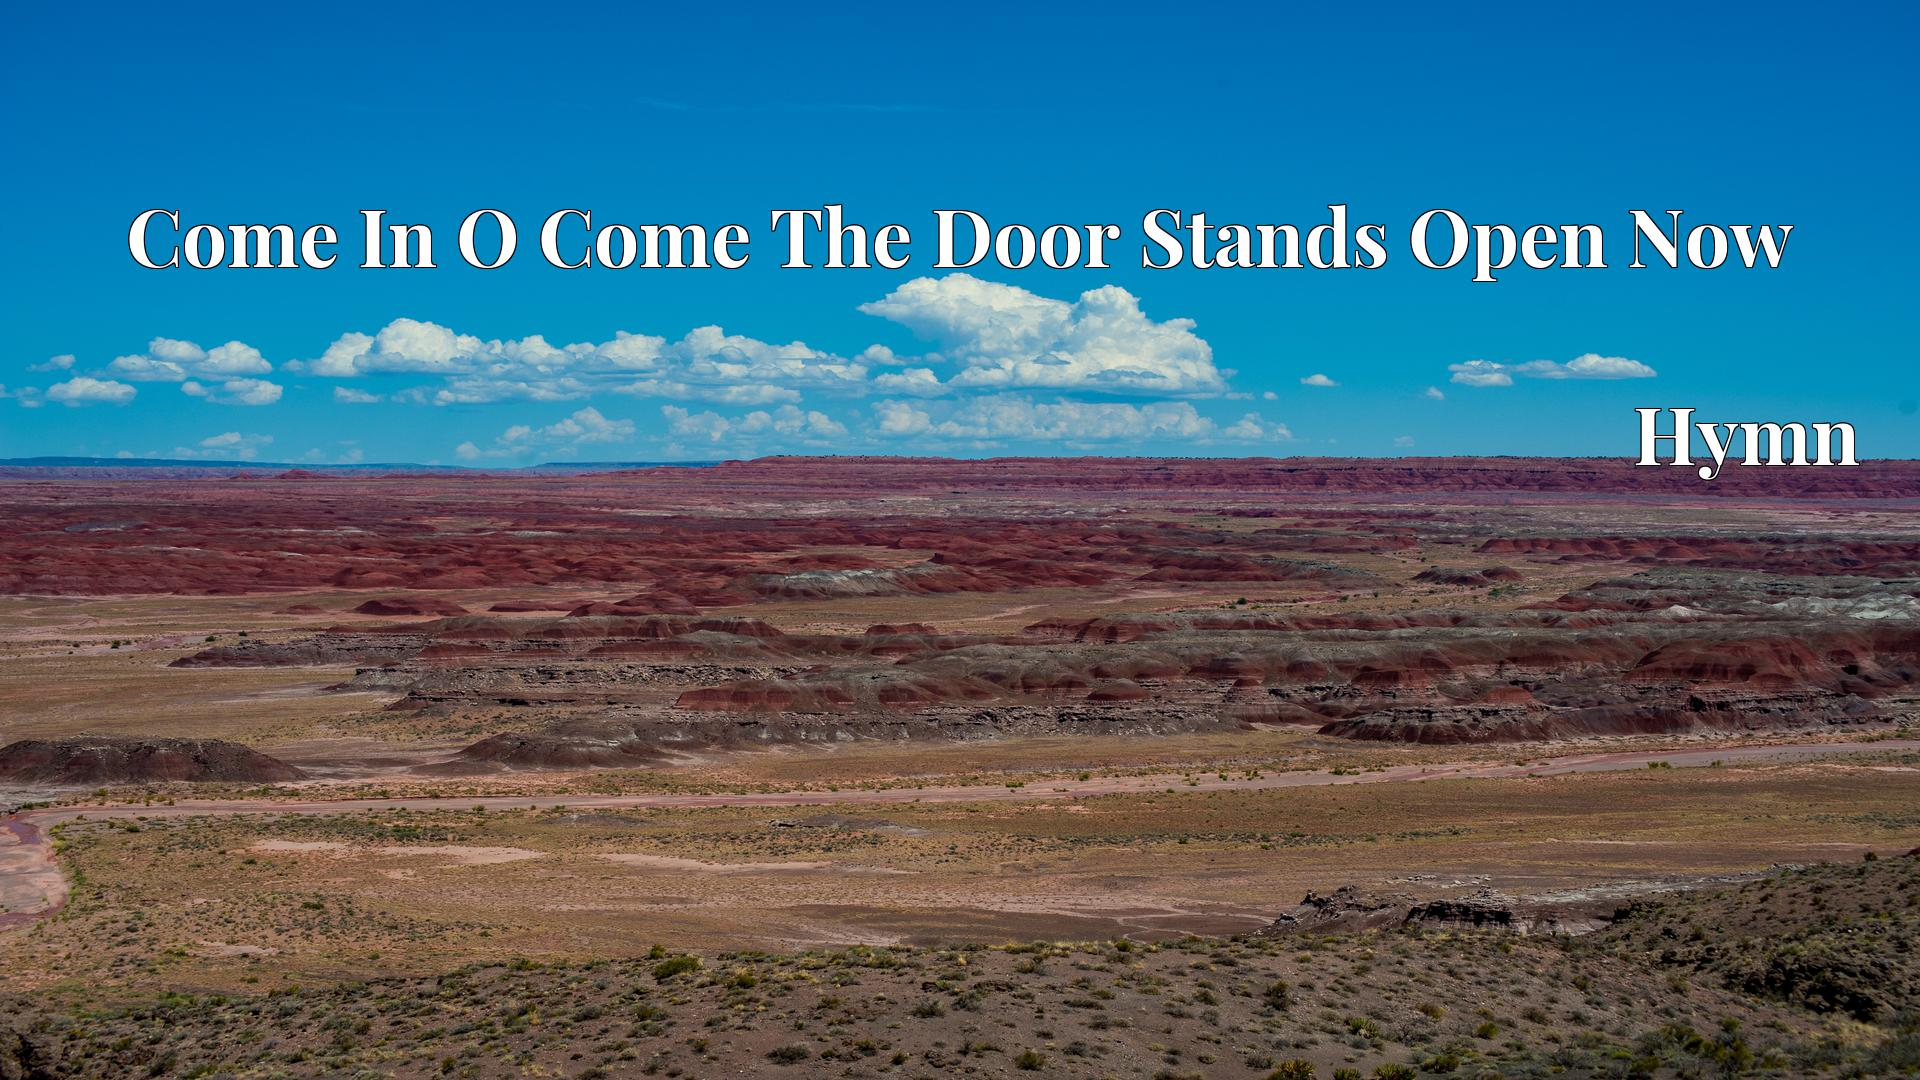 Come In O Come The Door Stands Open Now - Hymn